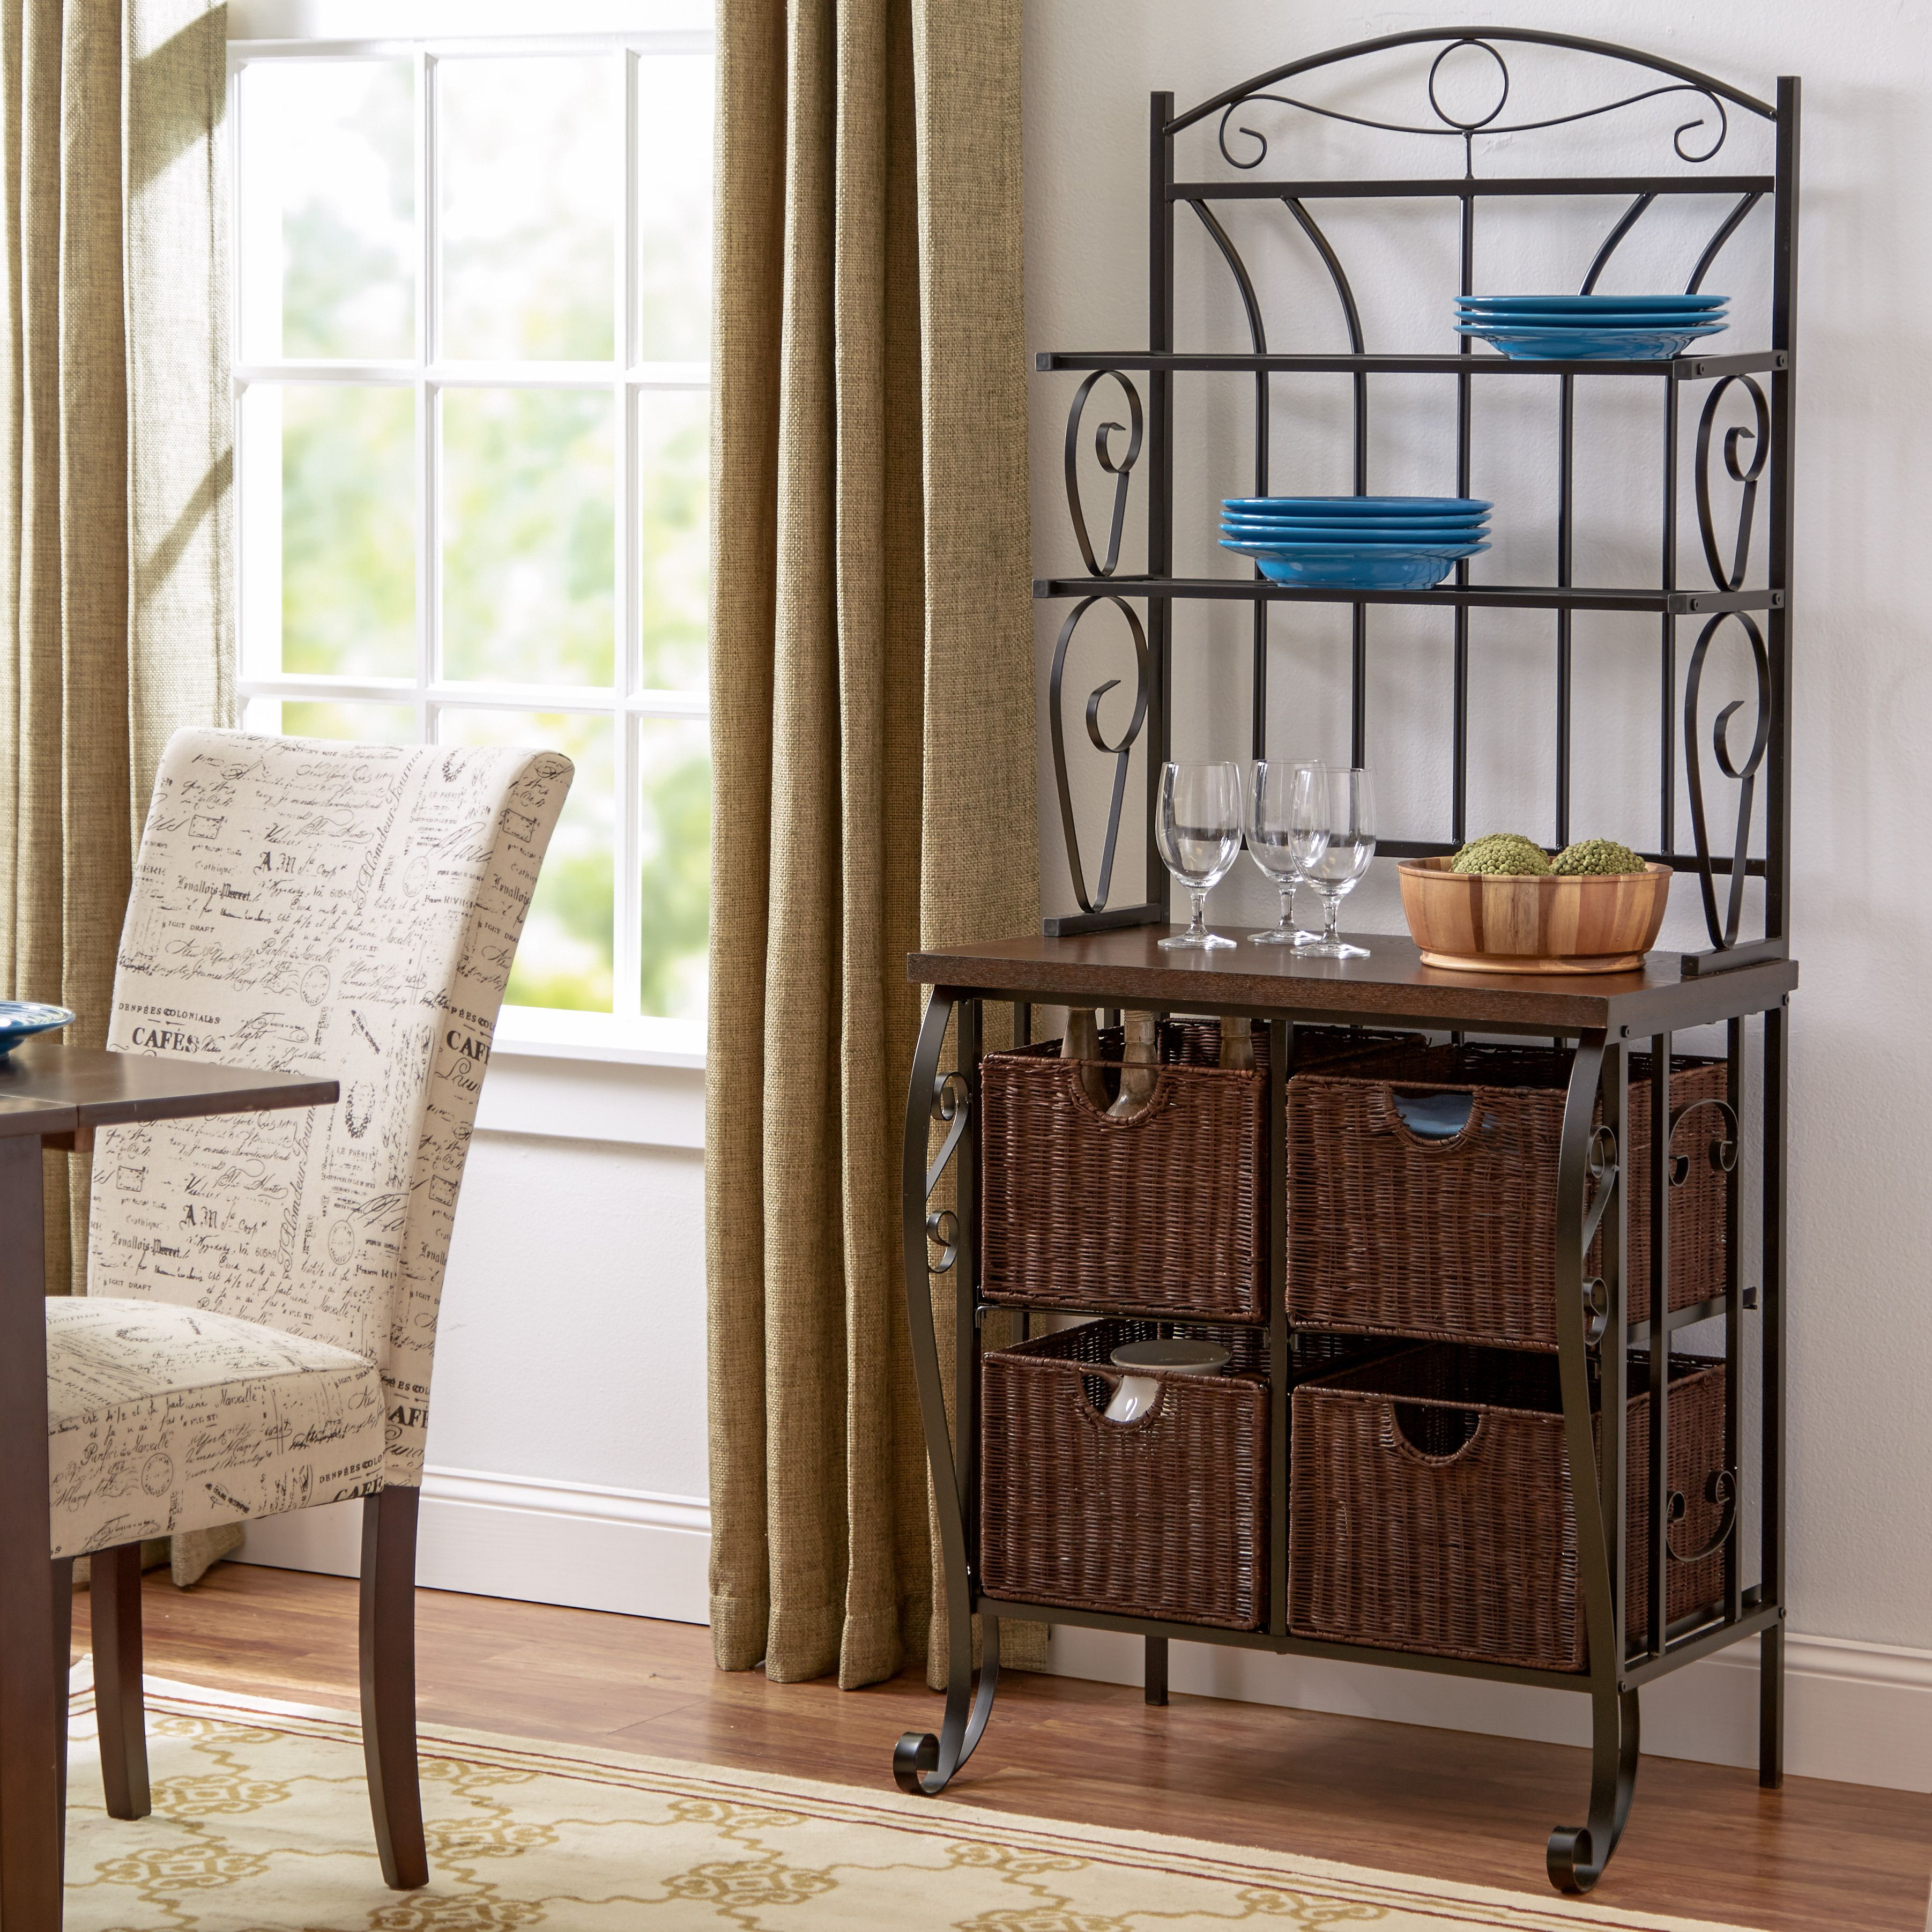 Andover Mills Buford Baker S Rack Apartment Decor Home Decor